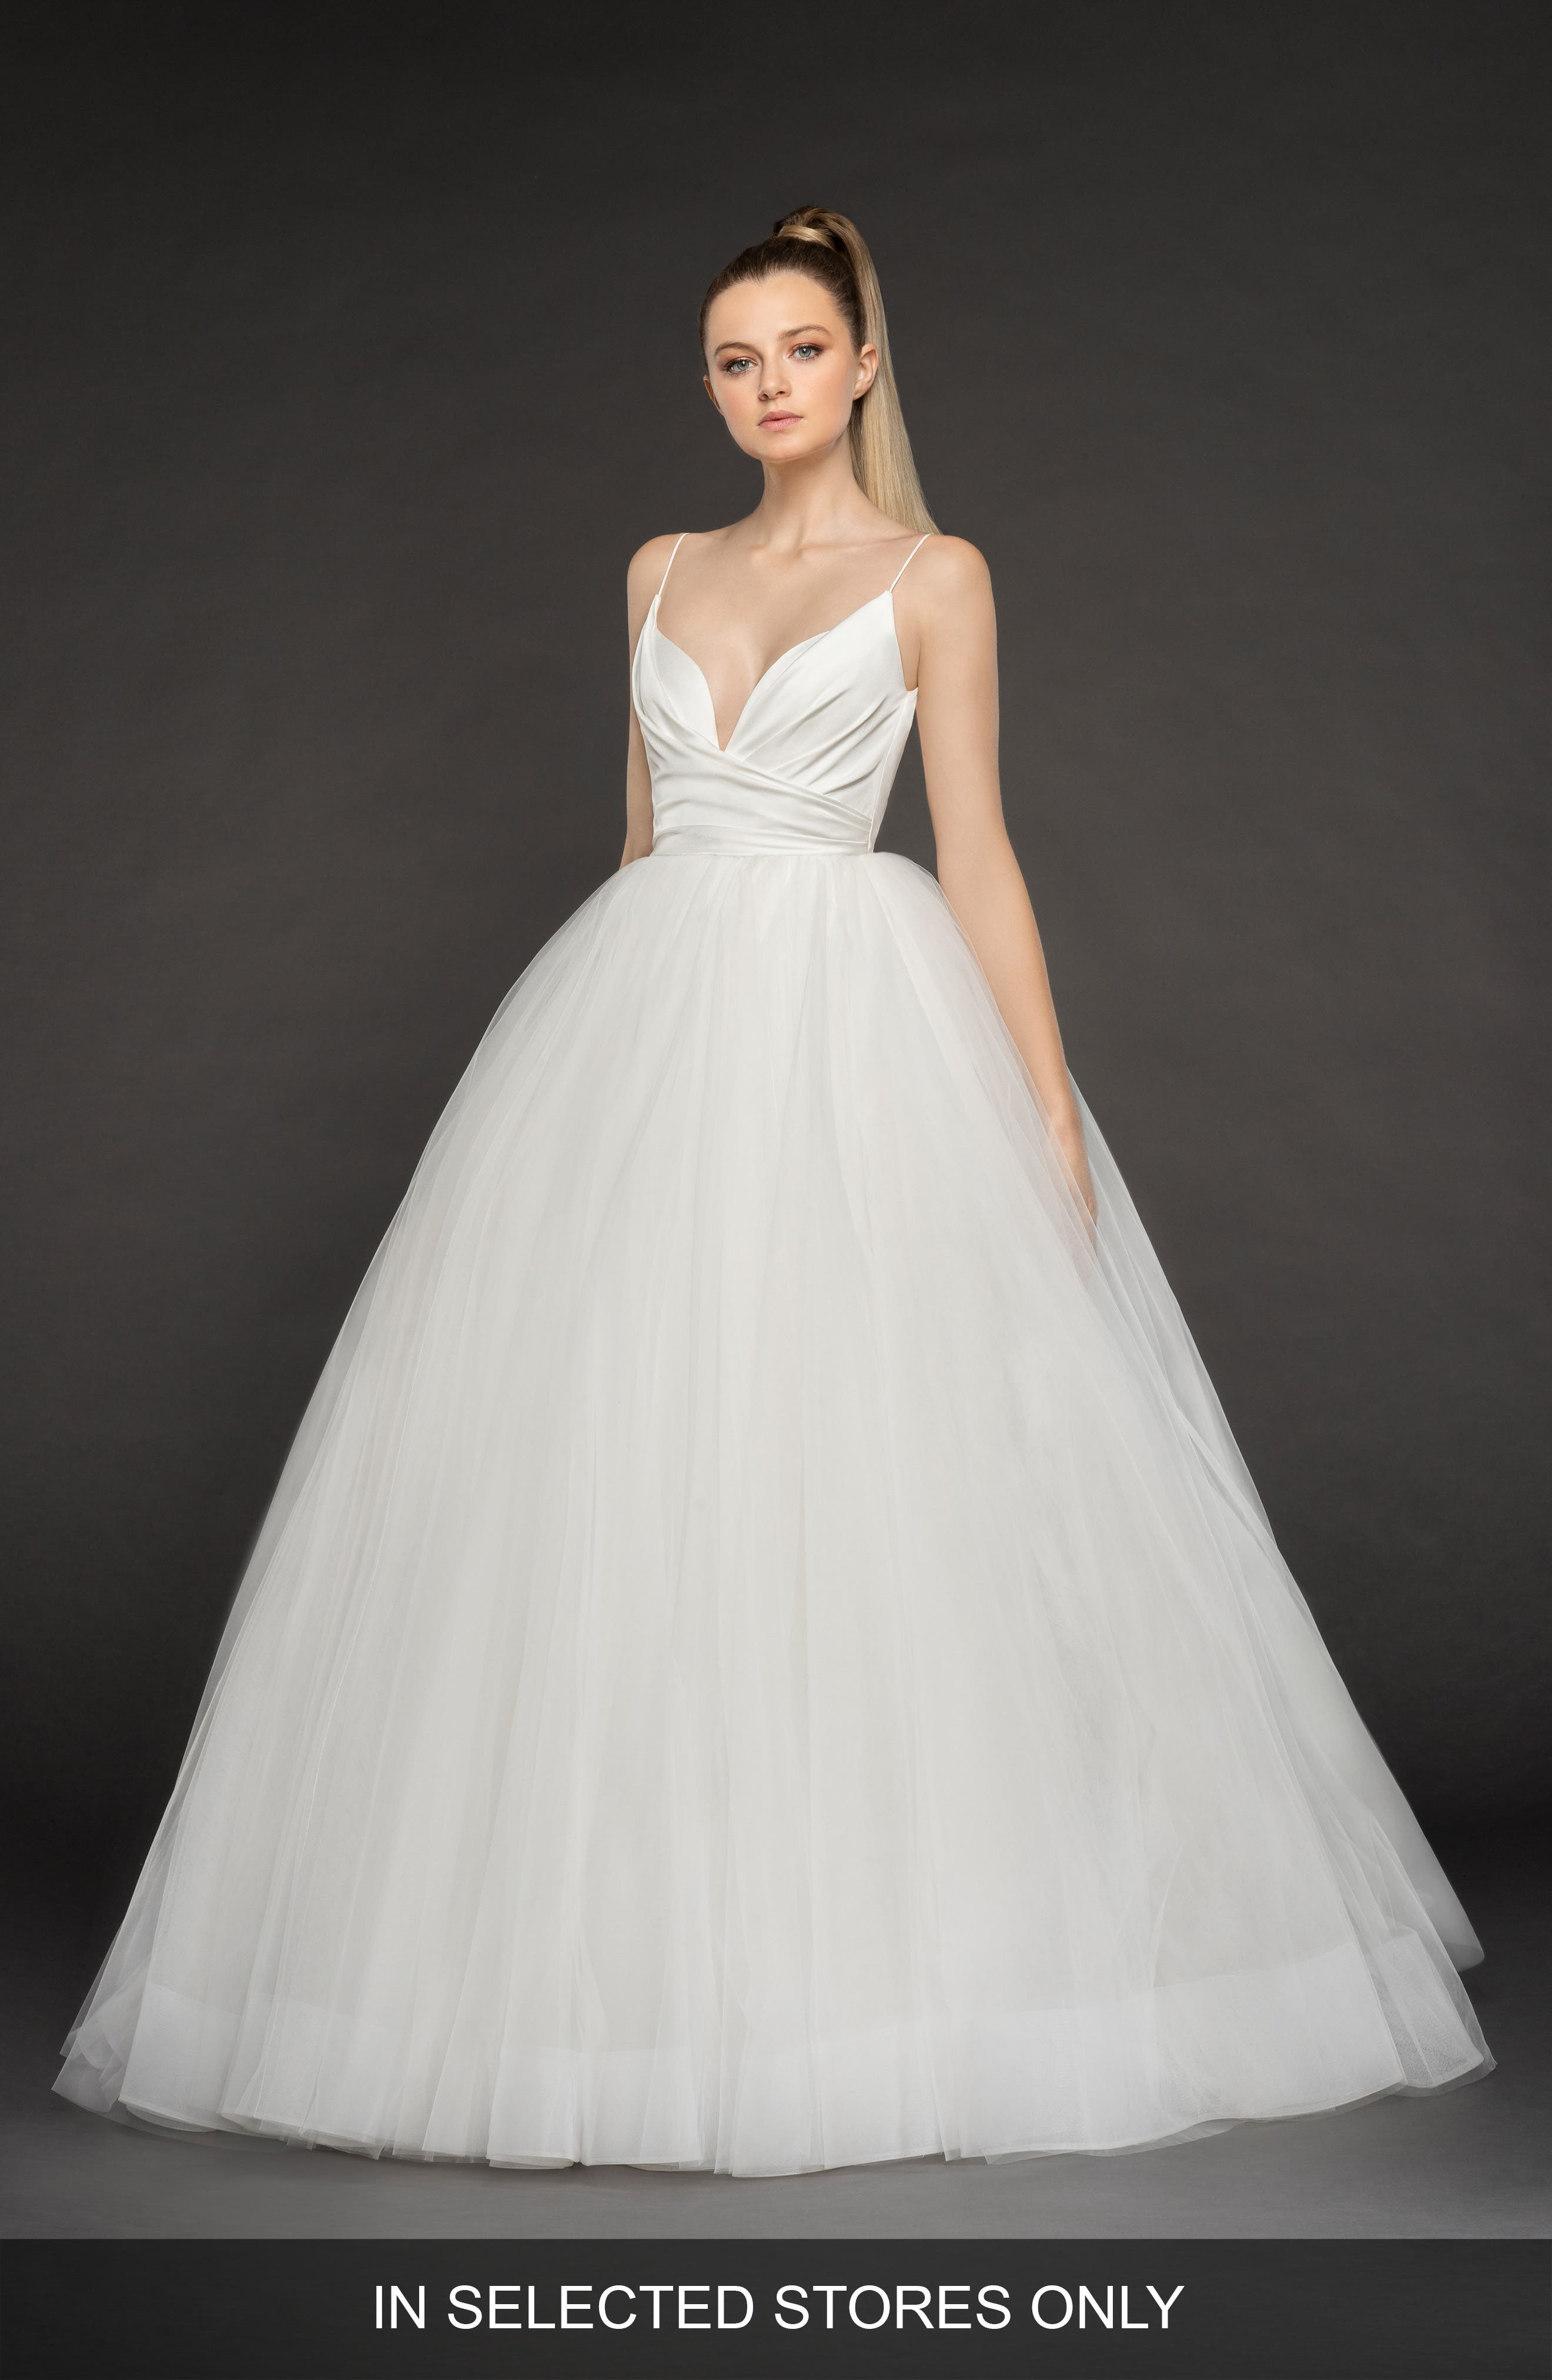 Blush By Hayley Paige Olympia Tulle Ballgown, Size IN STORE ONLY - White